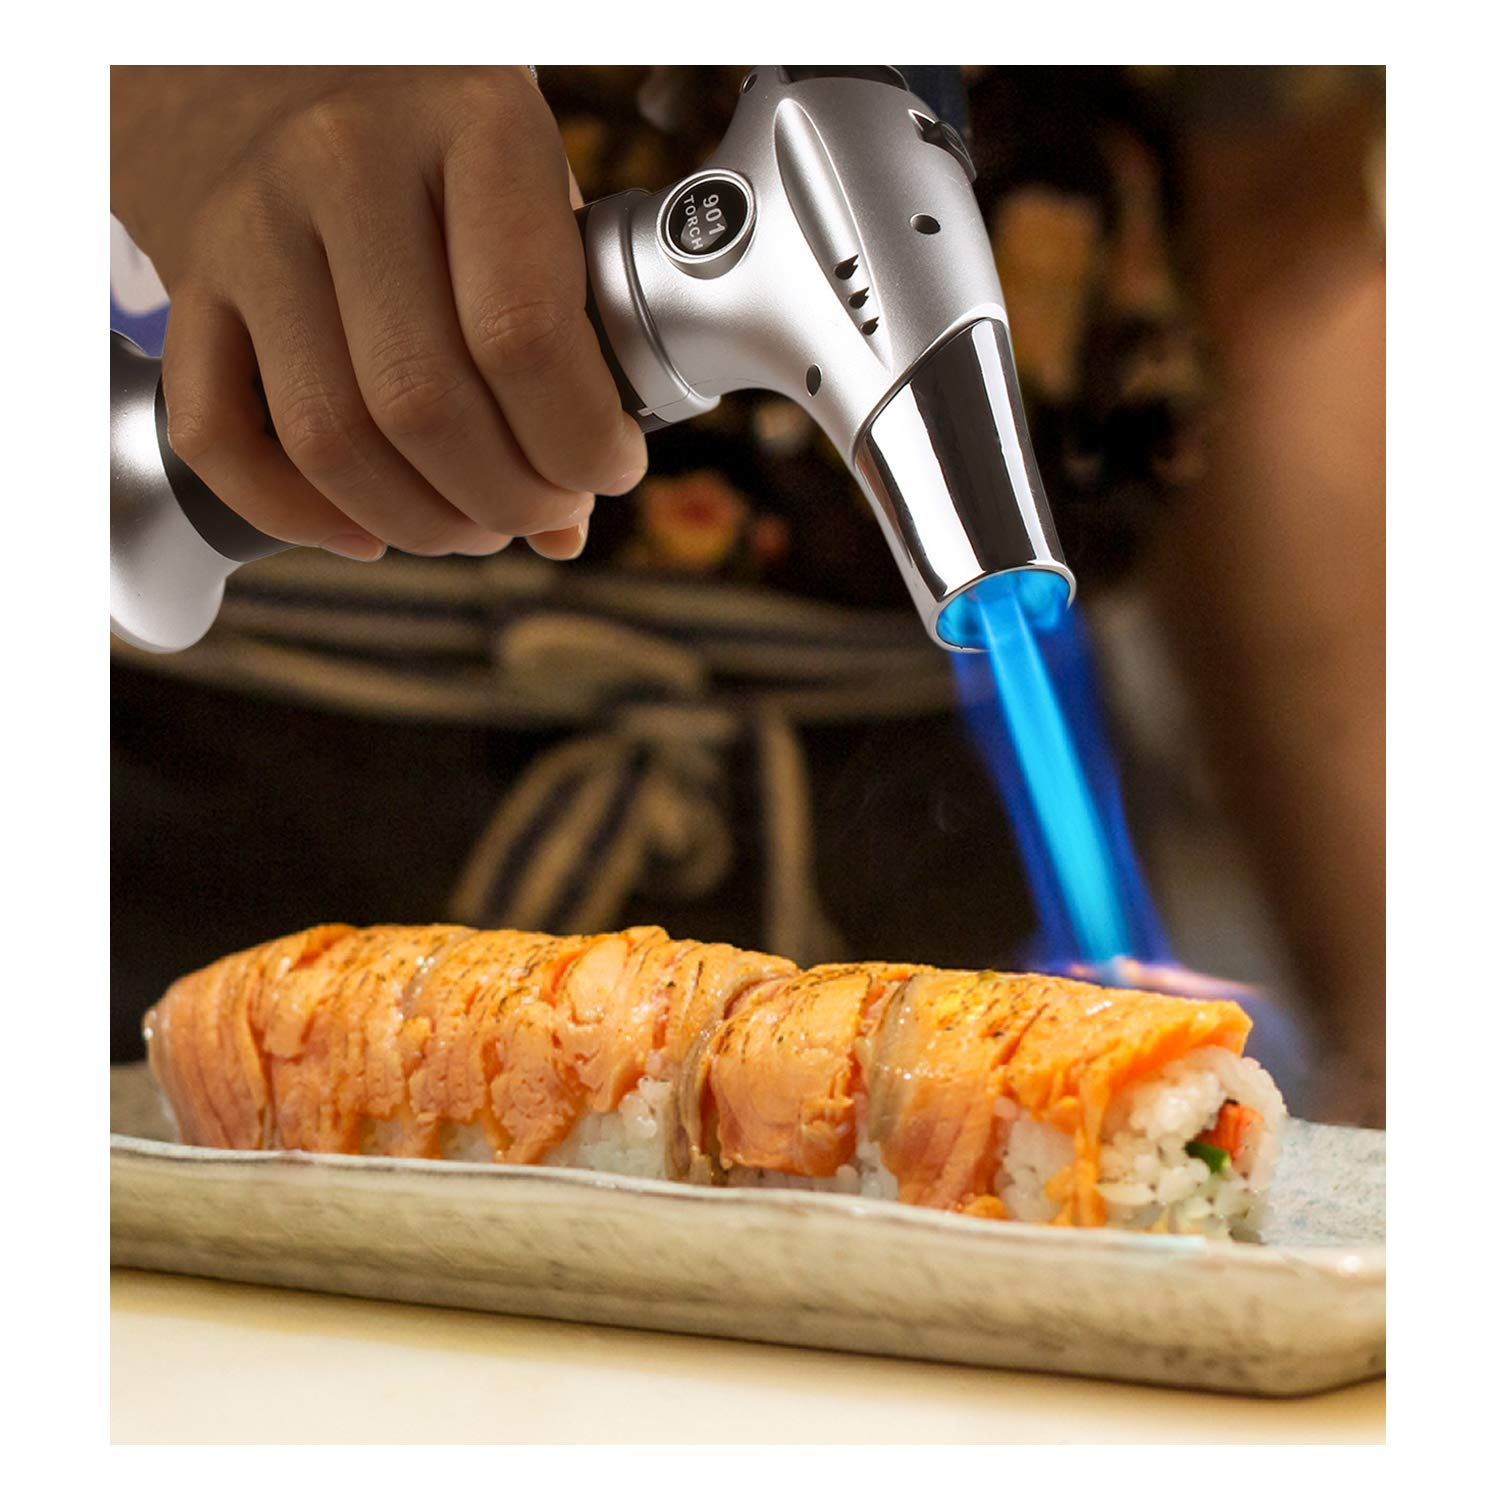 Blow Torch Lighter, Culinary Torch, Refillable Kitchen Butane Torch with Safety Lock and Adjustable Flame Perfect for DIY, Creme Brulee, BBQ and Baking, Butane Gas Not Included, Black by Sondiko (Image #7)